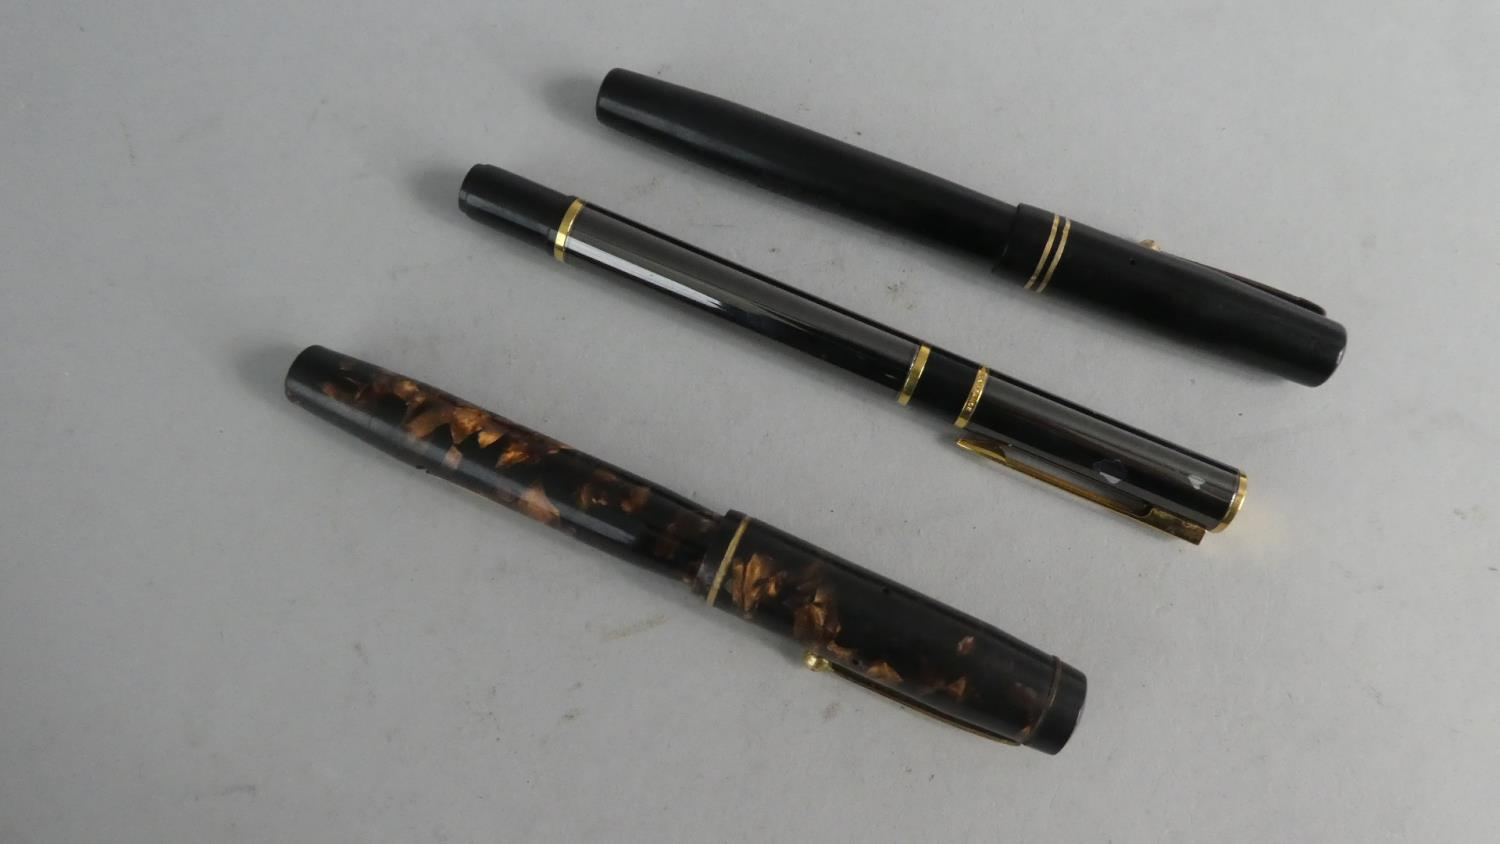 Lot 255 - Three Vintage Fountain Pens, Two with 14k Gold Nibs